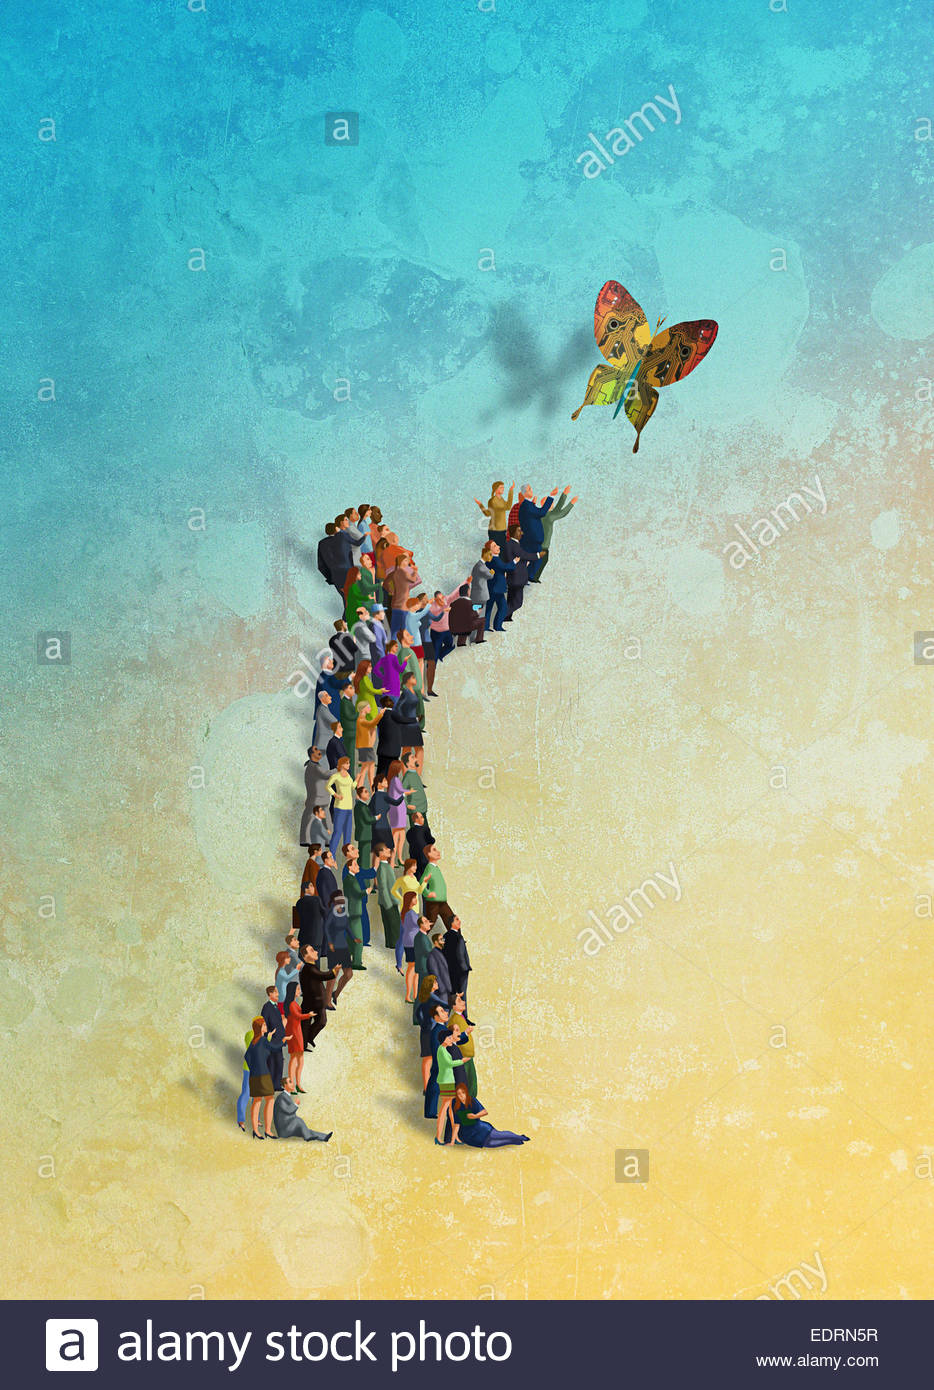 Lots of people working together to form man releasing circuit board butterfly - Stock Image